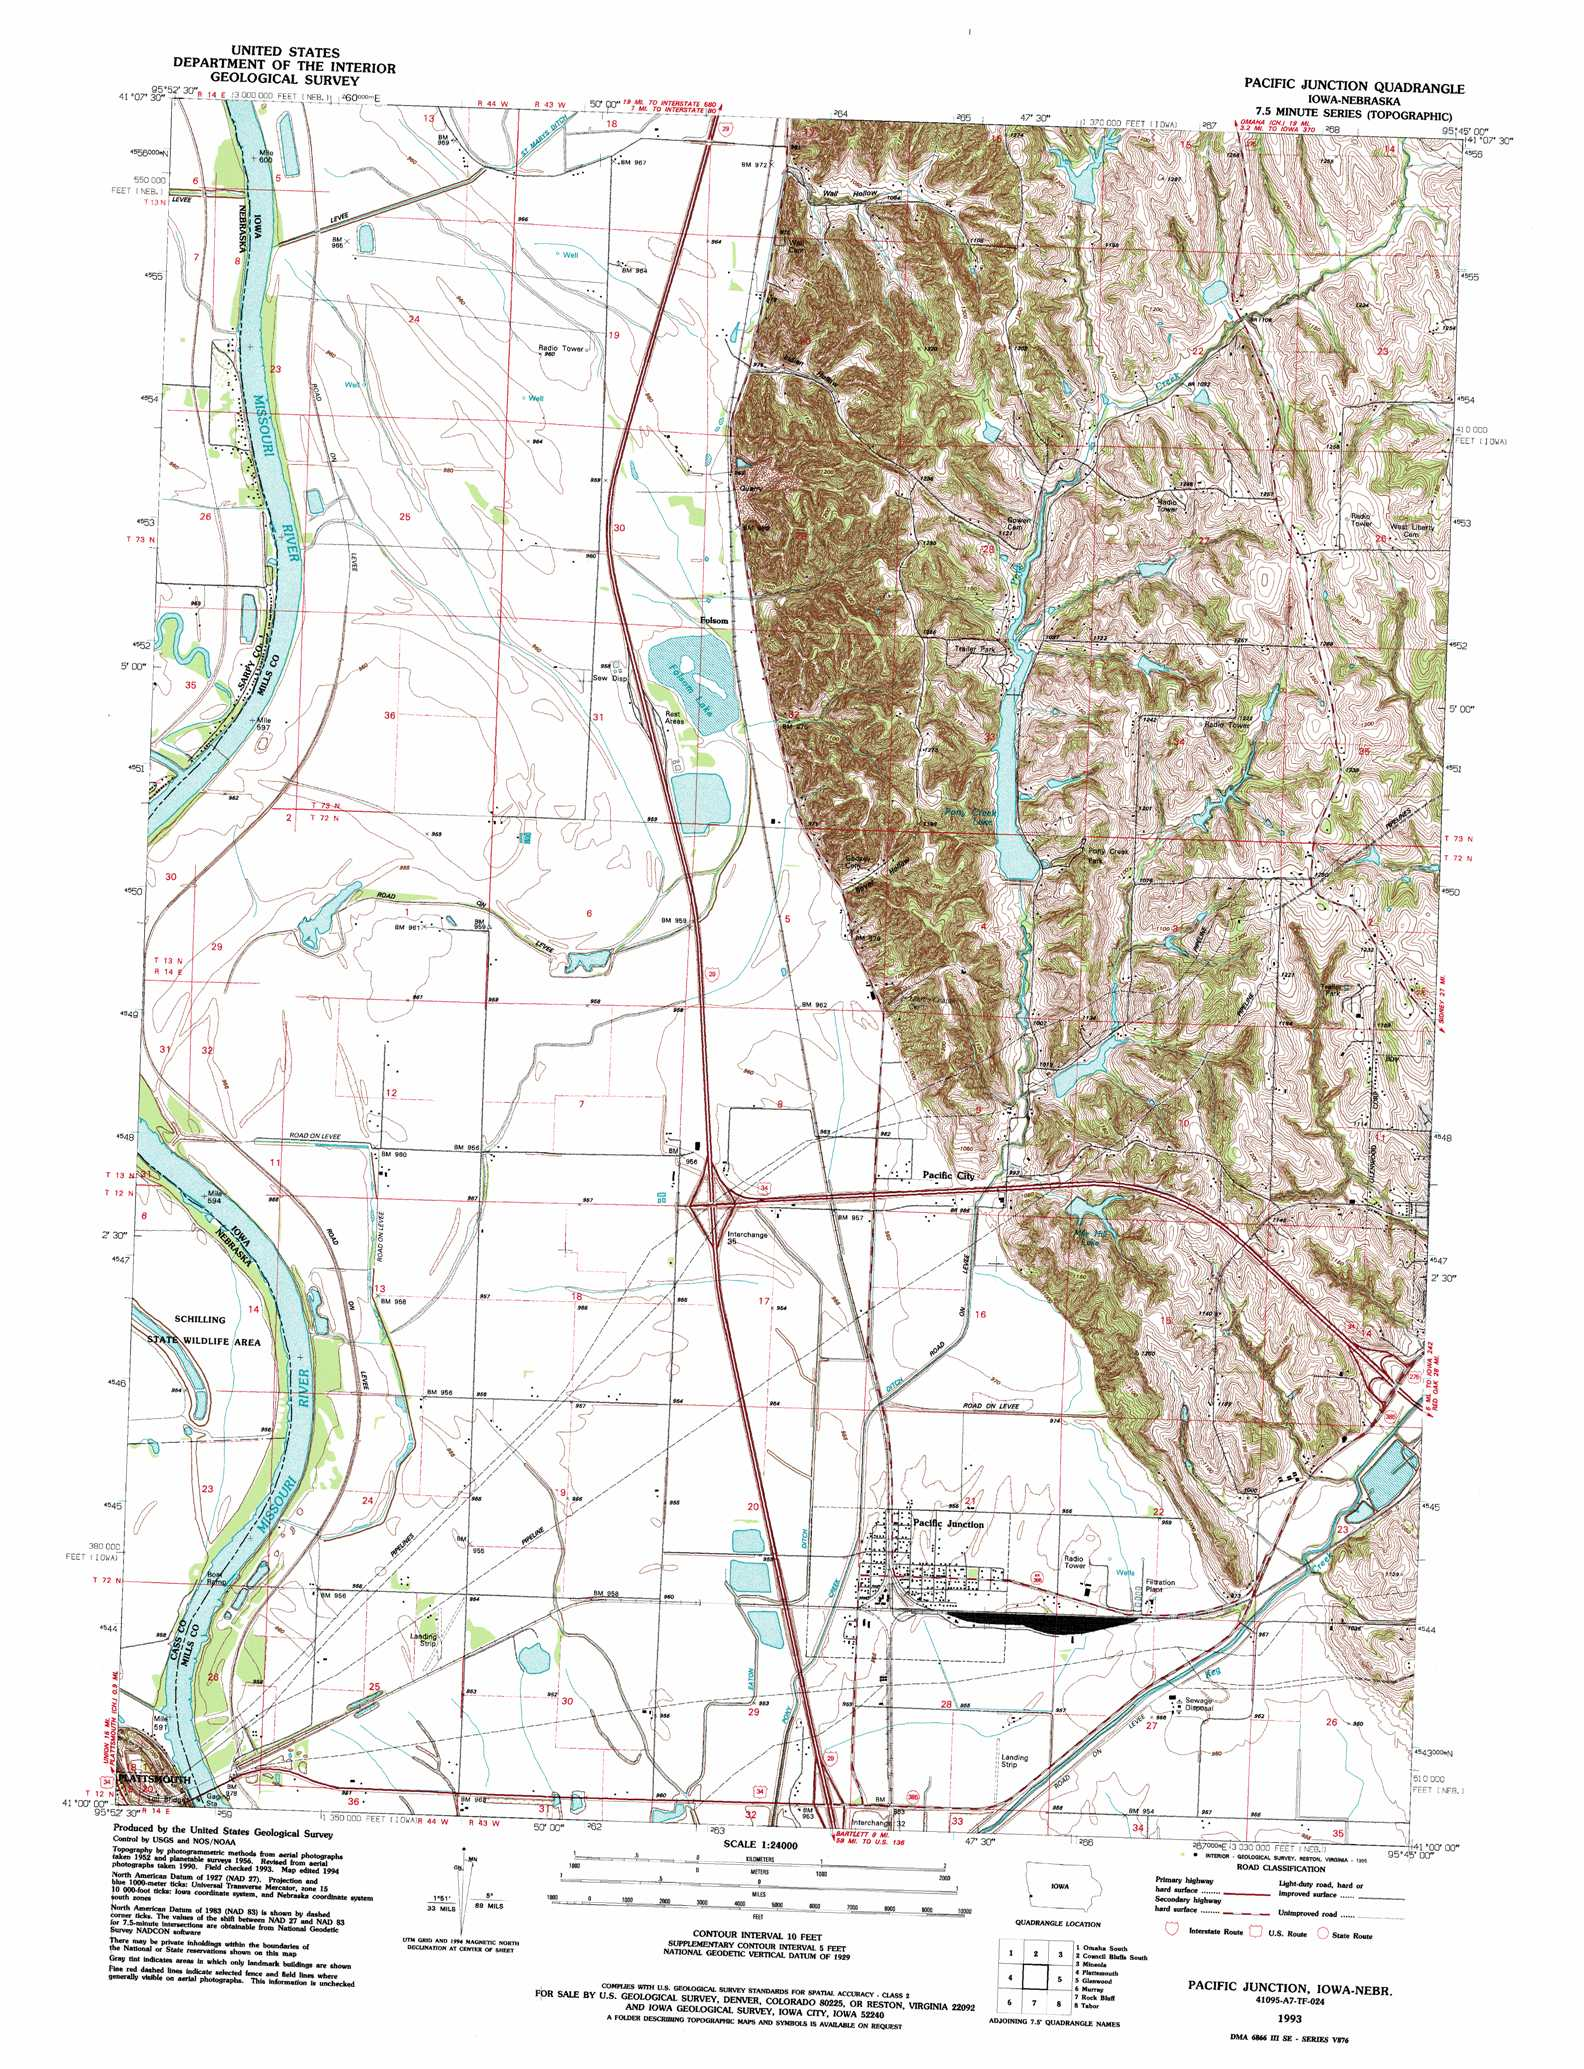 Worksheet. Pacific Junction topographic map IA NE  USGS Topo Quad 41095a7